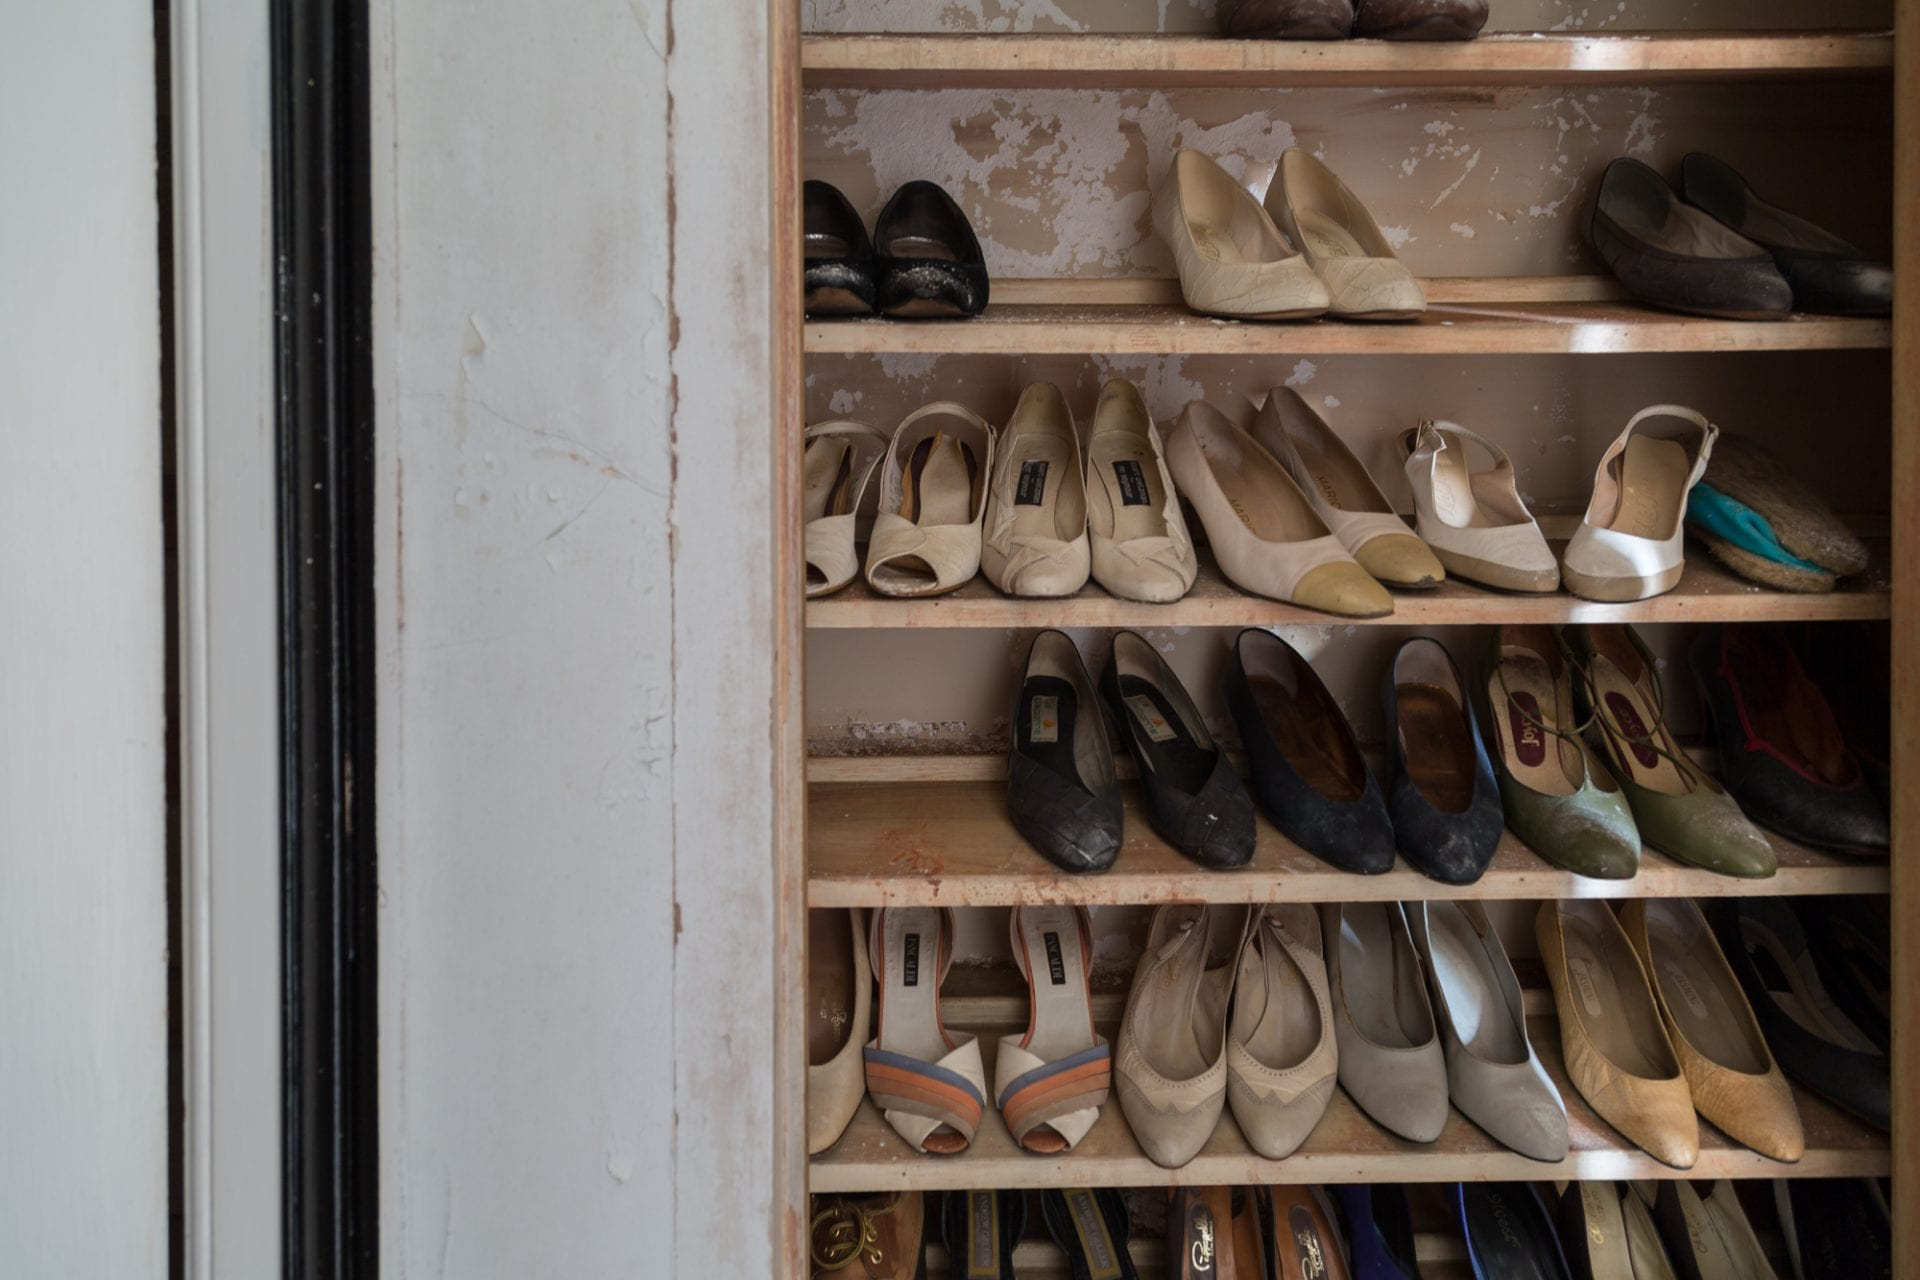 57-room-mansion-New-York-City-shoe-closet